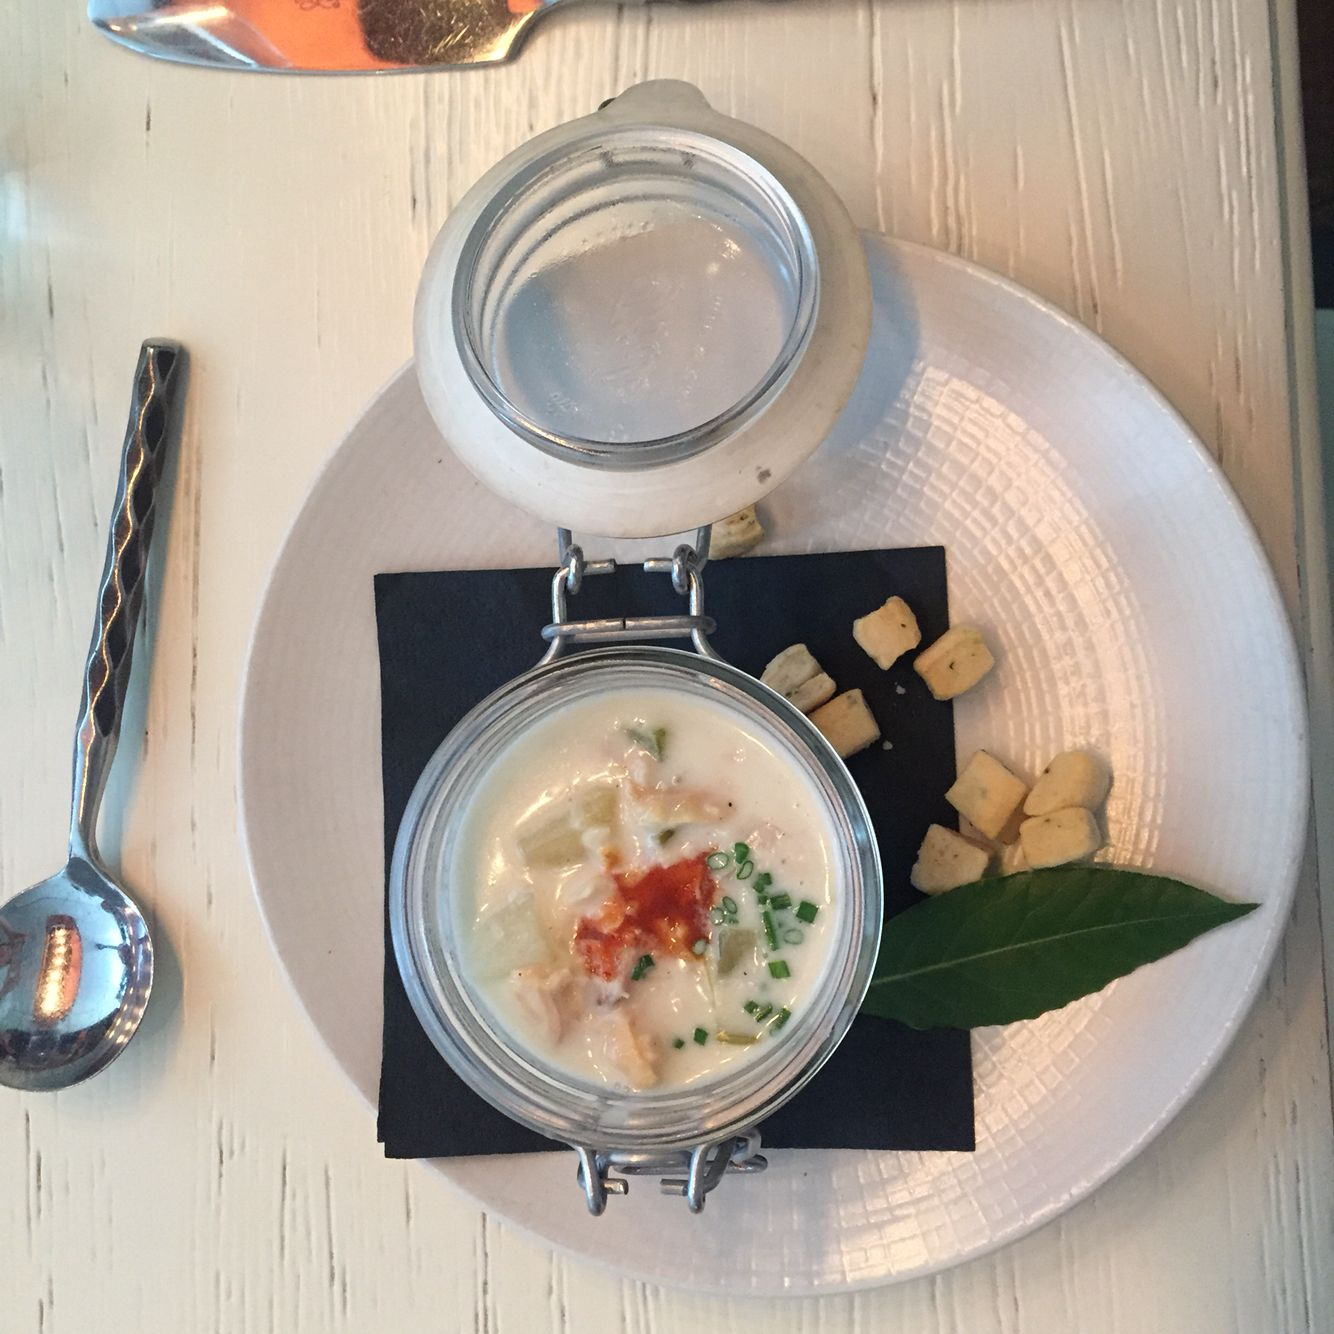 Yummy clam chowder from GT Oyster during restaurant week